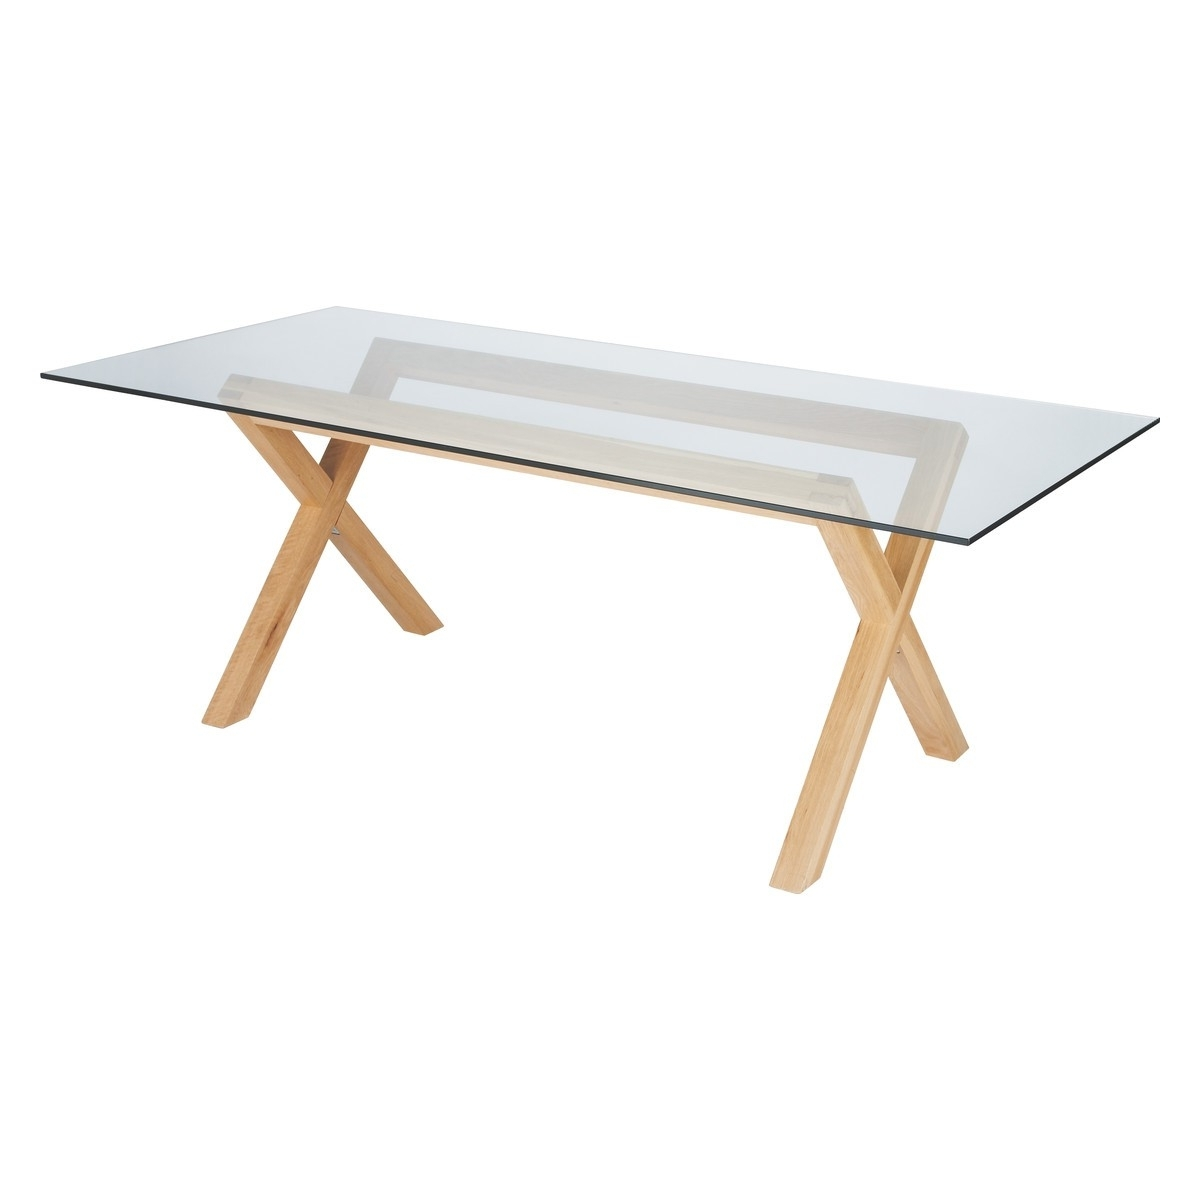 Favorite Oak 6 Seater Dining Tables With Regard To Dublin 8 Seater Oak And Glass Dining Table (View 7 of 25)